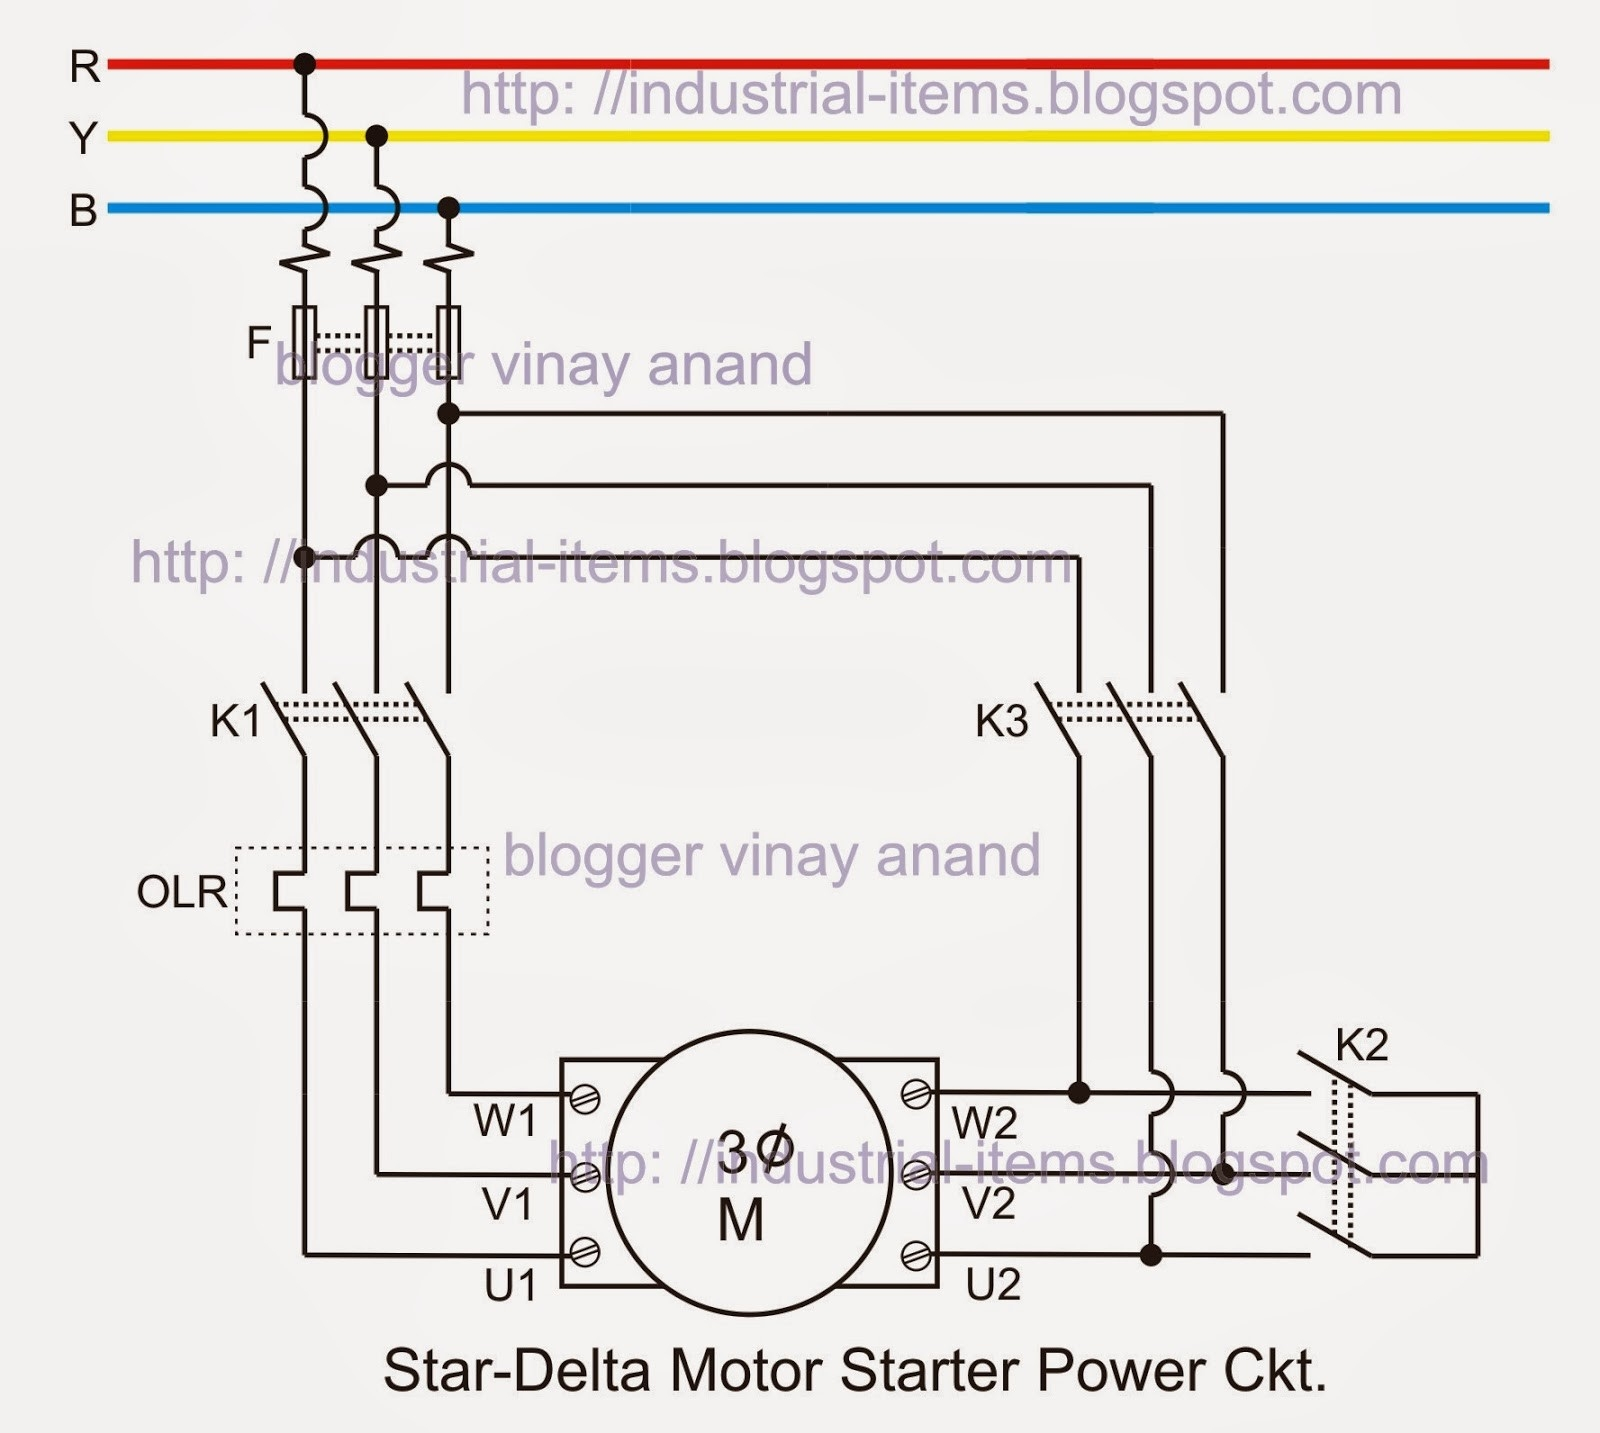 3 Phase 6 Lead Motor Wiring Diagram: 3 Phase Motor Wiring Diagram 12 Leads